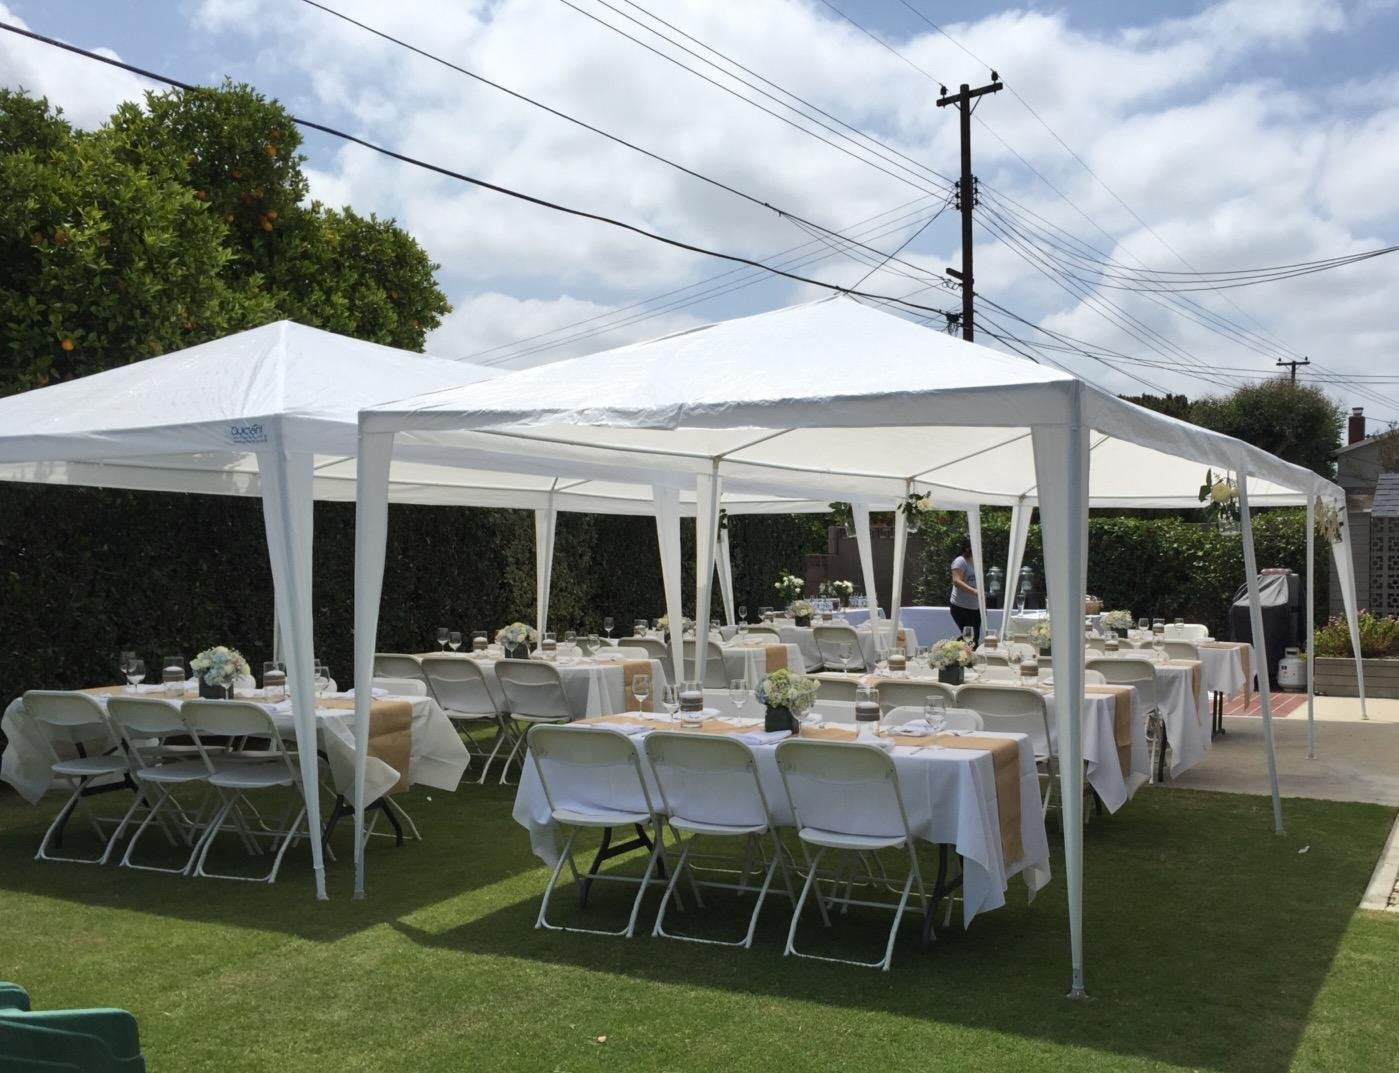 Amazon.com Peaktop 10u0027x30u0027 Heavy Duty Outdoor Party Wedding Tent Canopy Gazebo Storage Shelter Pavilion. Garden u0026 Outdoor & Amazon.com: Peaktop 10u0027x30u0027 Heavy Duty Outdoor Party Wedding Tent ...